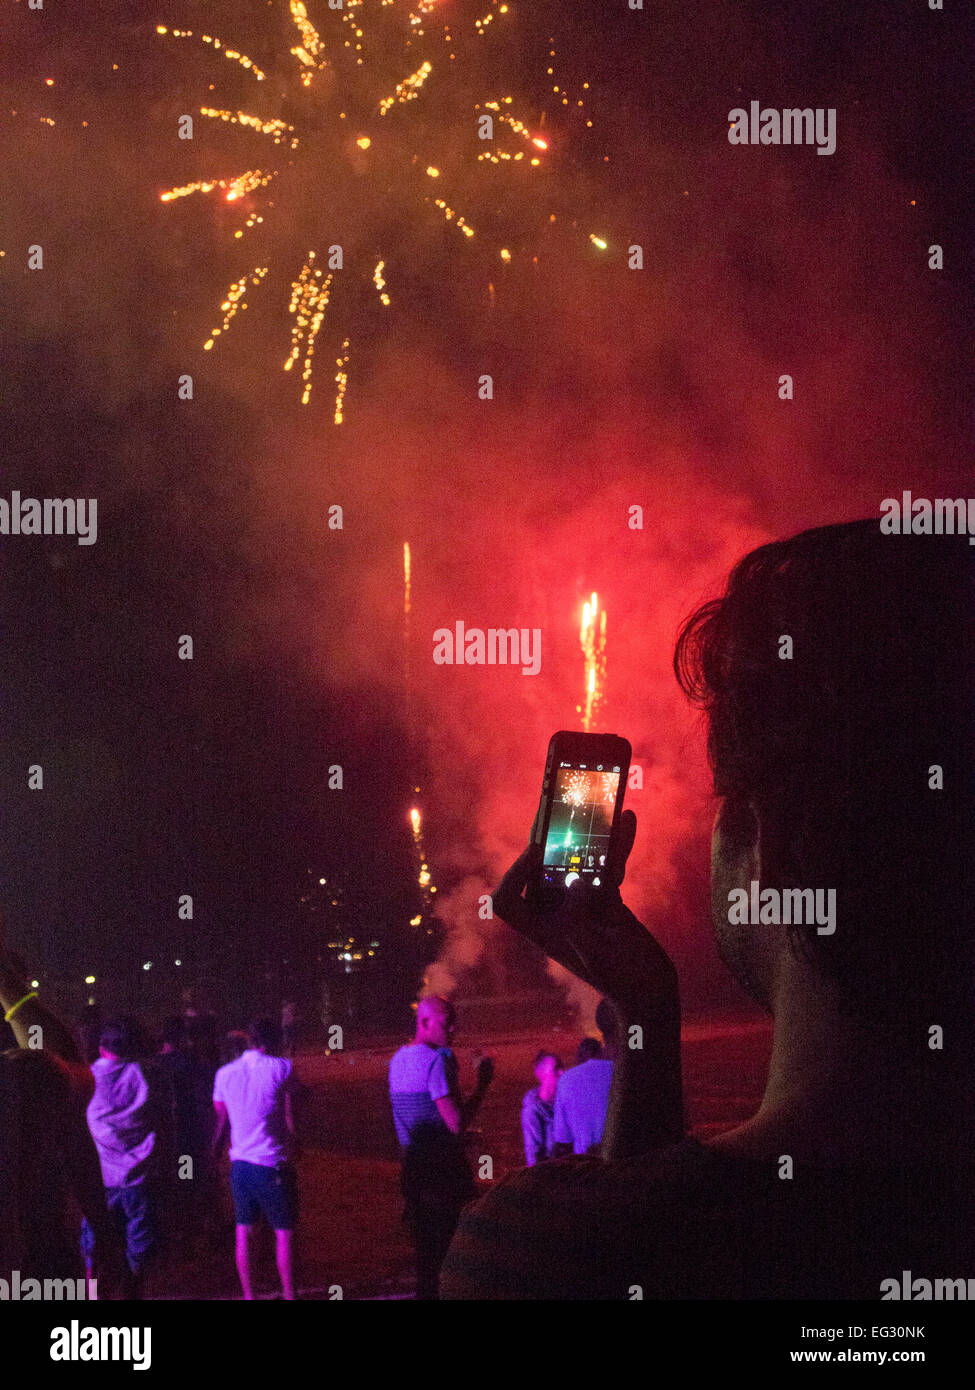 Tourists celebrate New Year's Eve 2014/2015 with fireworks in Phi Phi island in Thailand, where the 2004 Tsunami - Stock Image